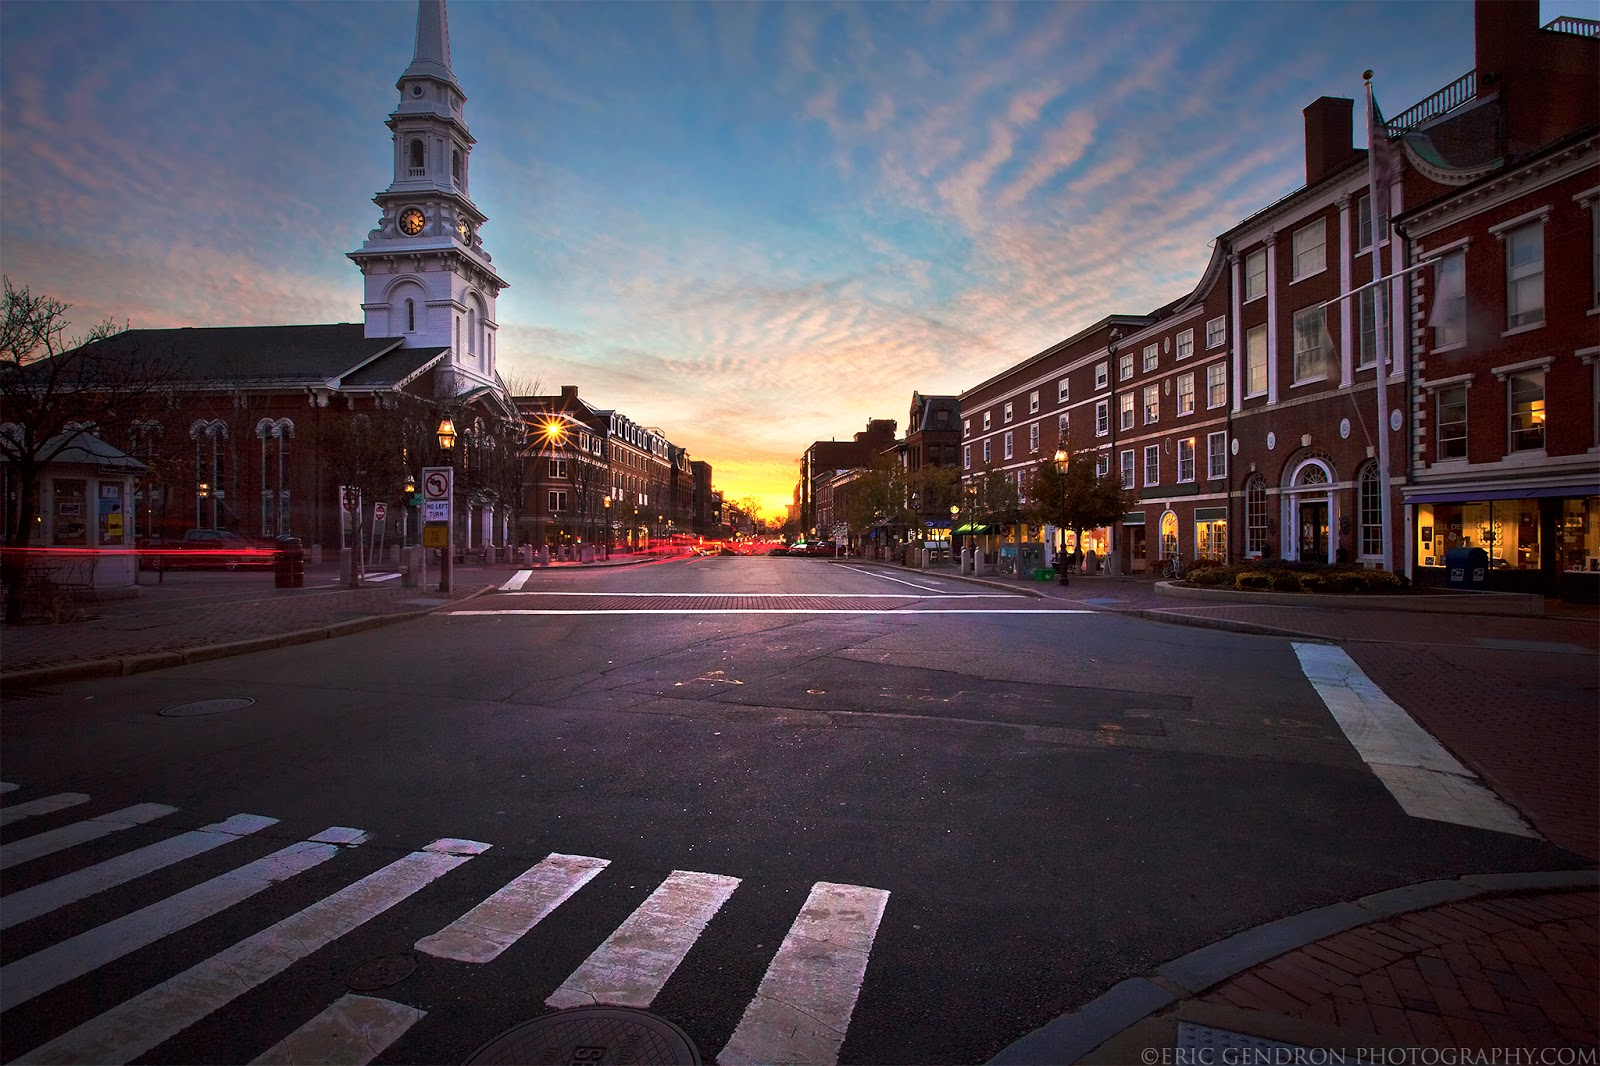 Beautiful sunset in market square downtown portsmouth